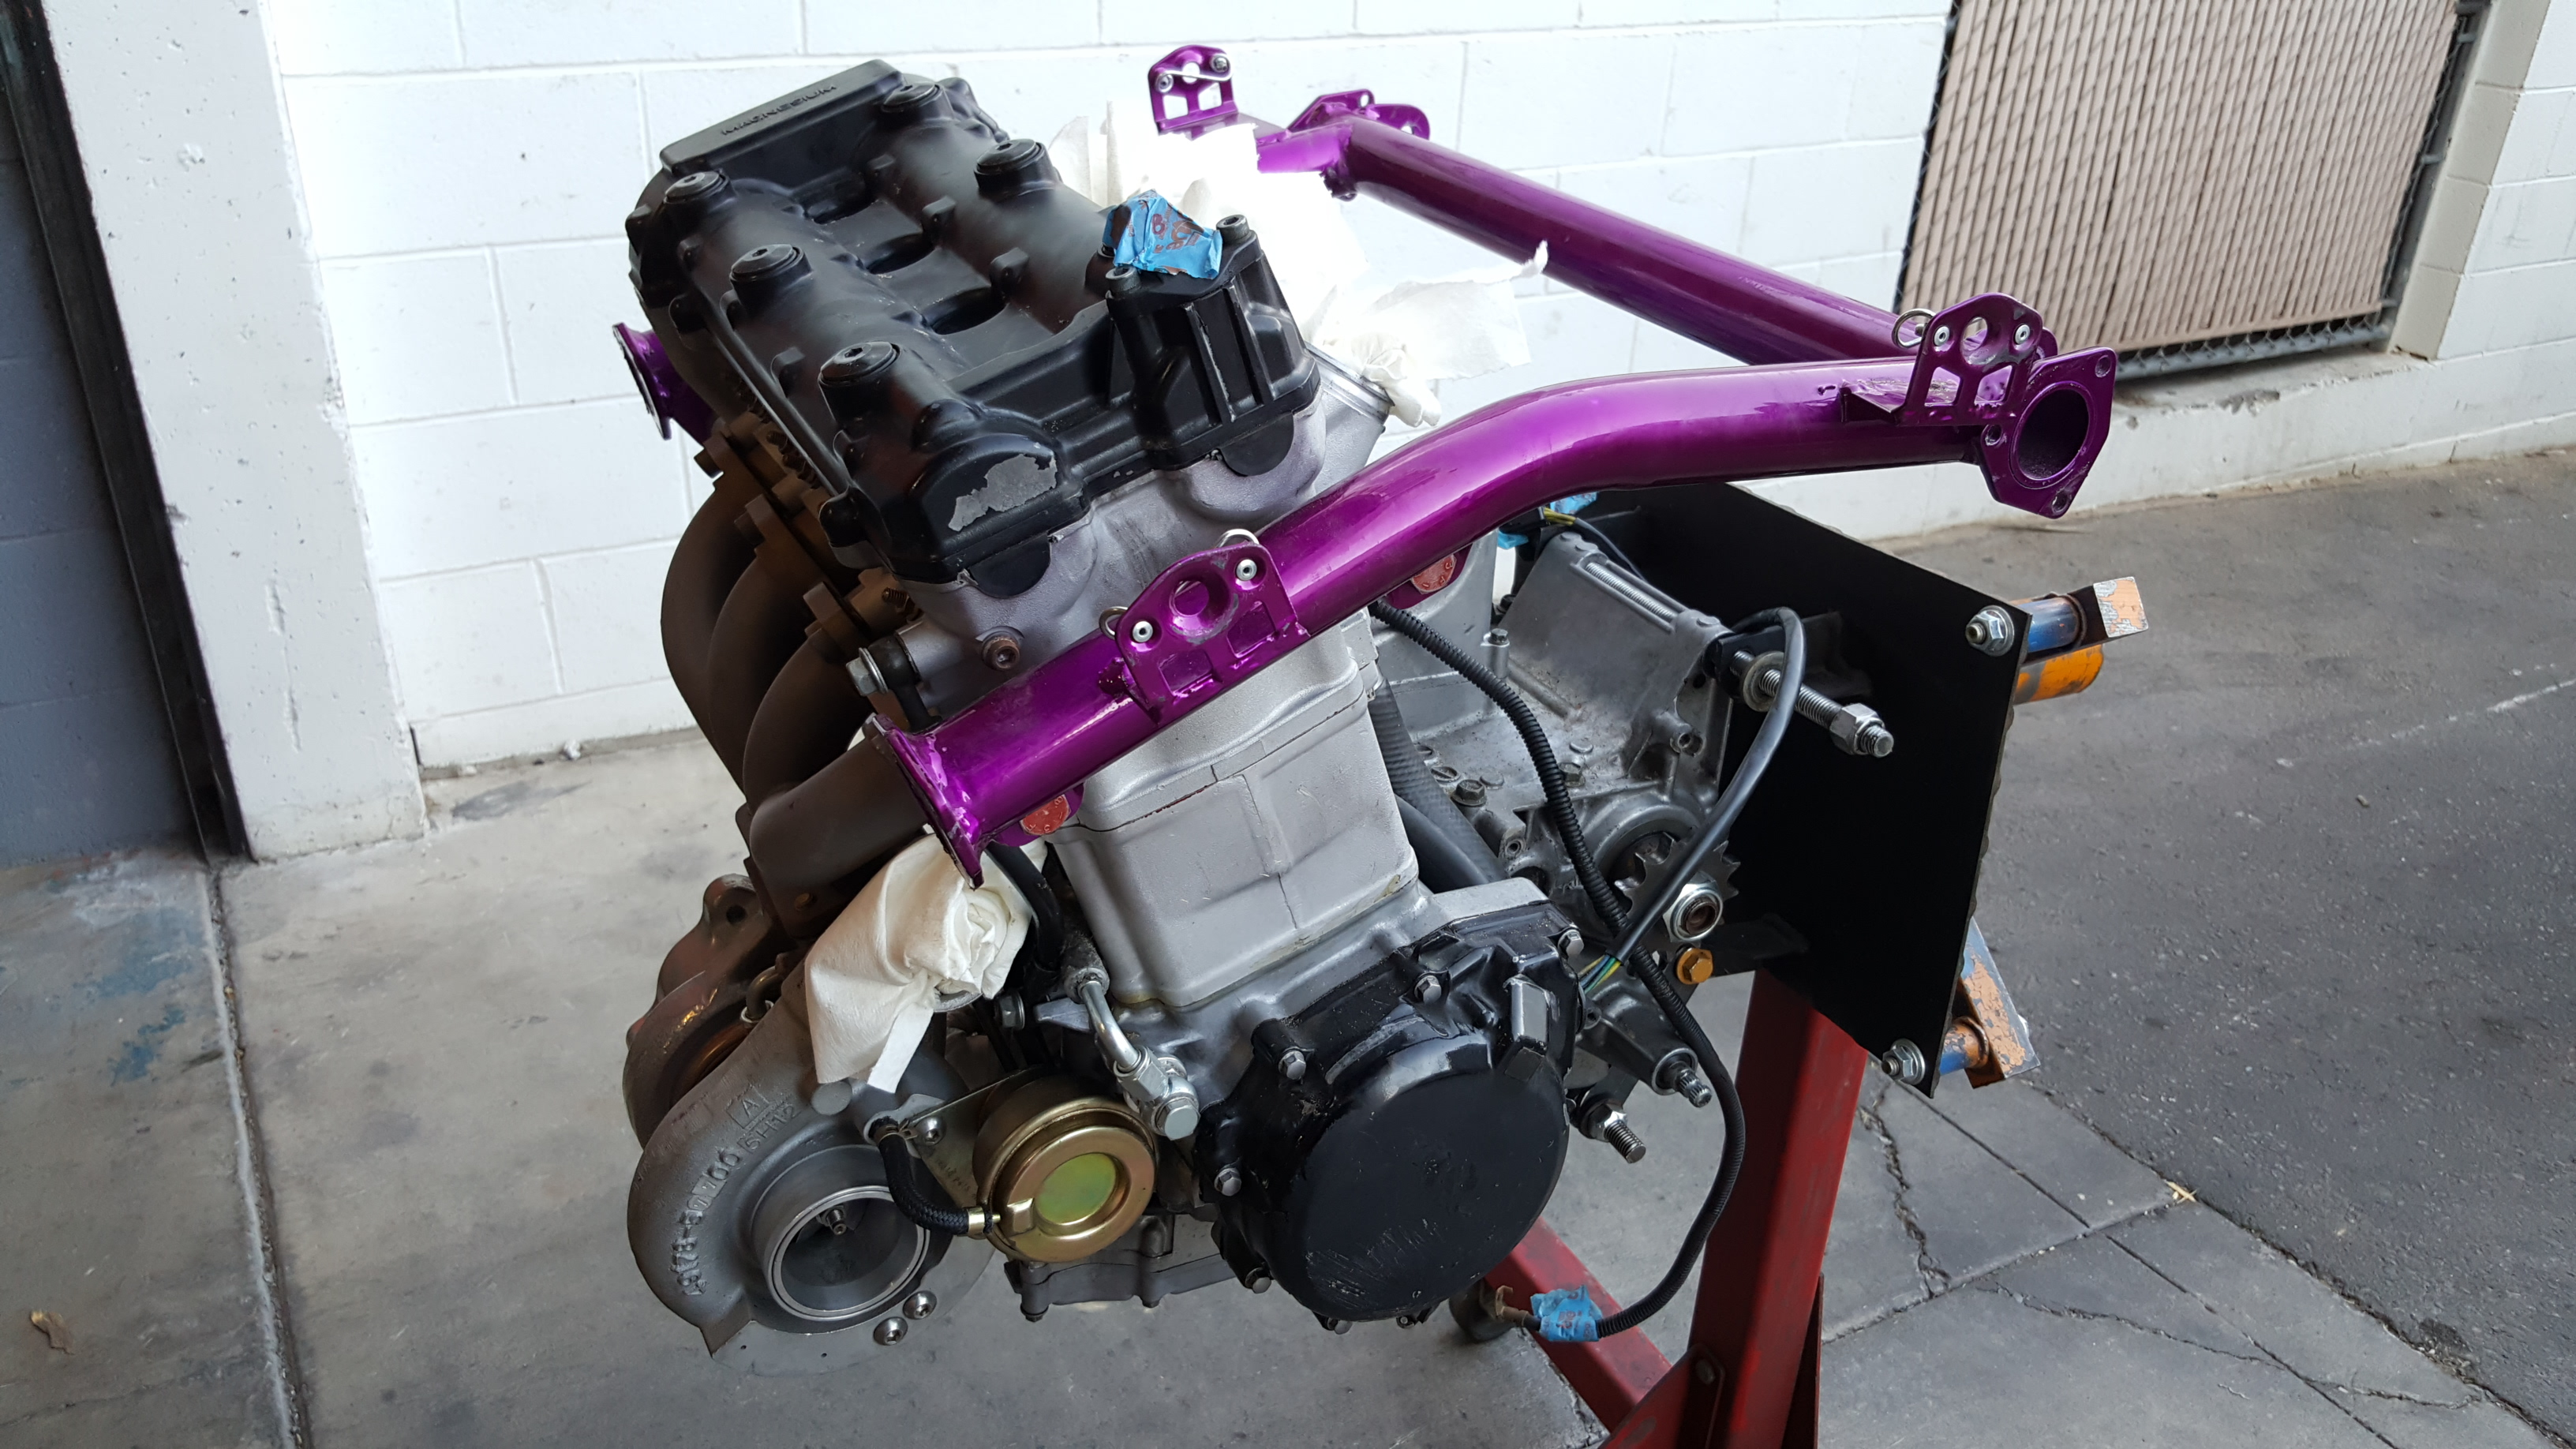 Turbocharged 1300cc Suzuki Hayabusa Sandrail Engine - Motor Mission